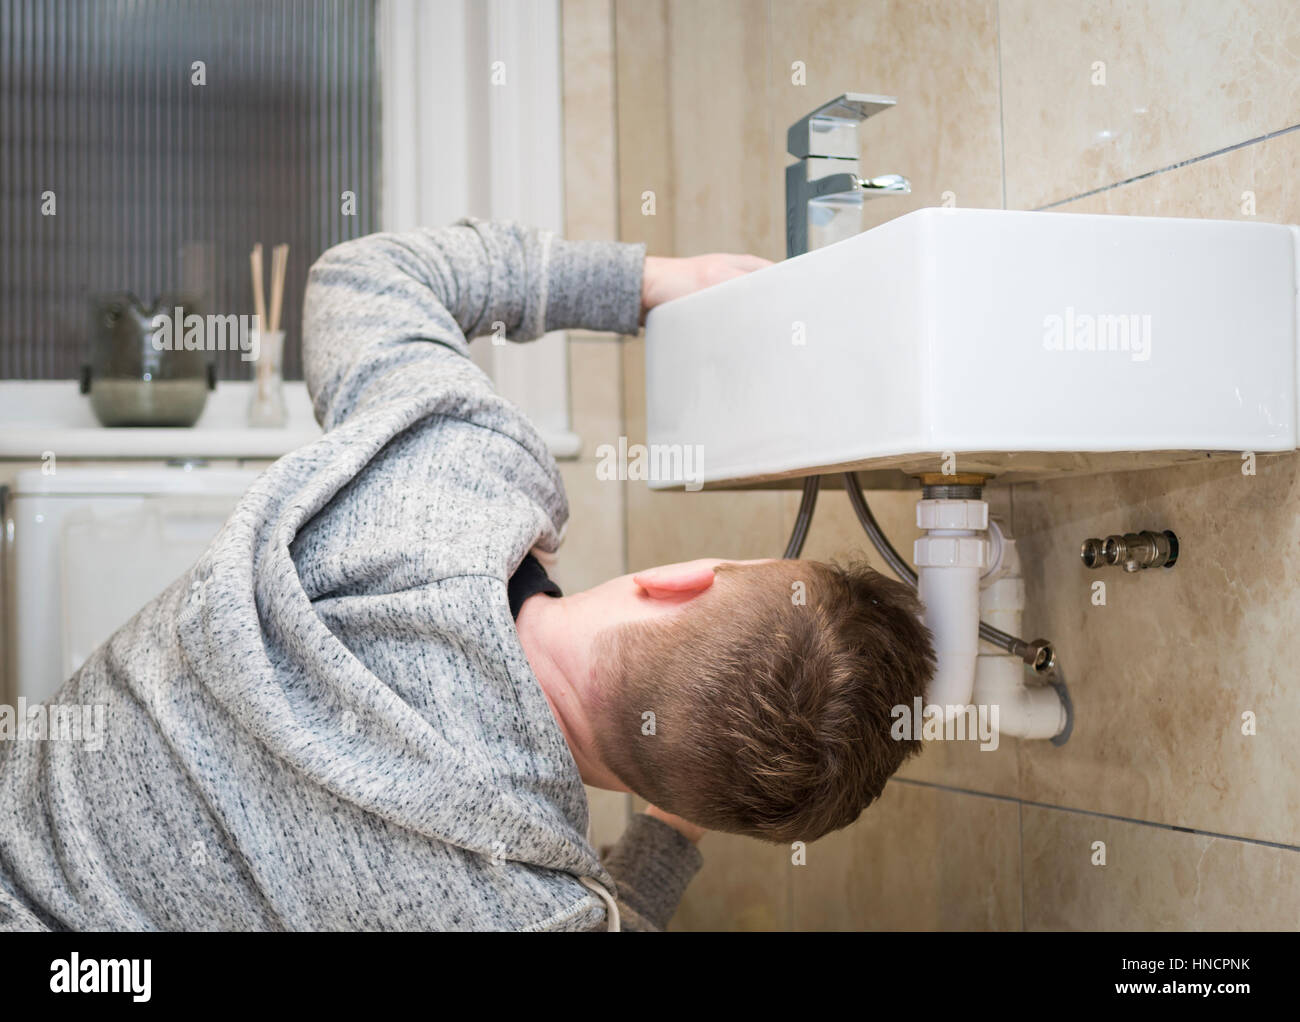 Rear view of a young man attempting do it yourself diy plumbing at rear view of a young man attempting do it yourself diy plumbing at home under a sink fitting a new tap solutioingenieria Choice Image